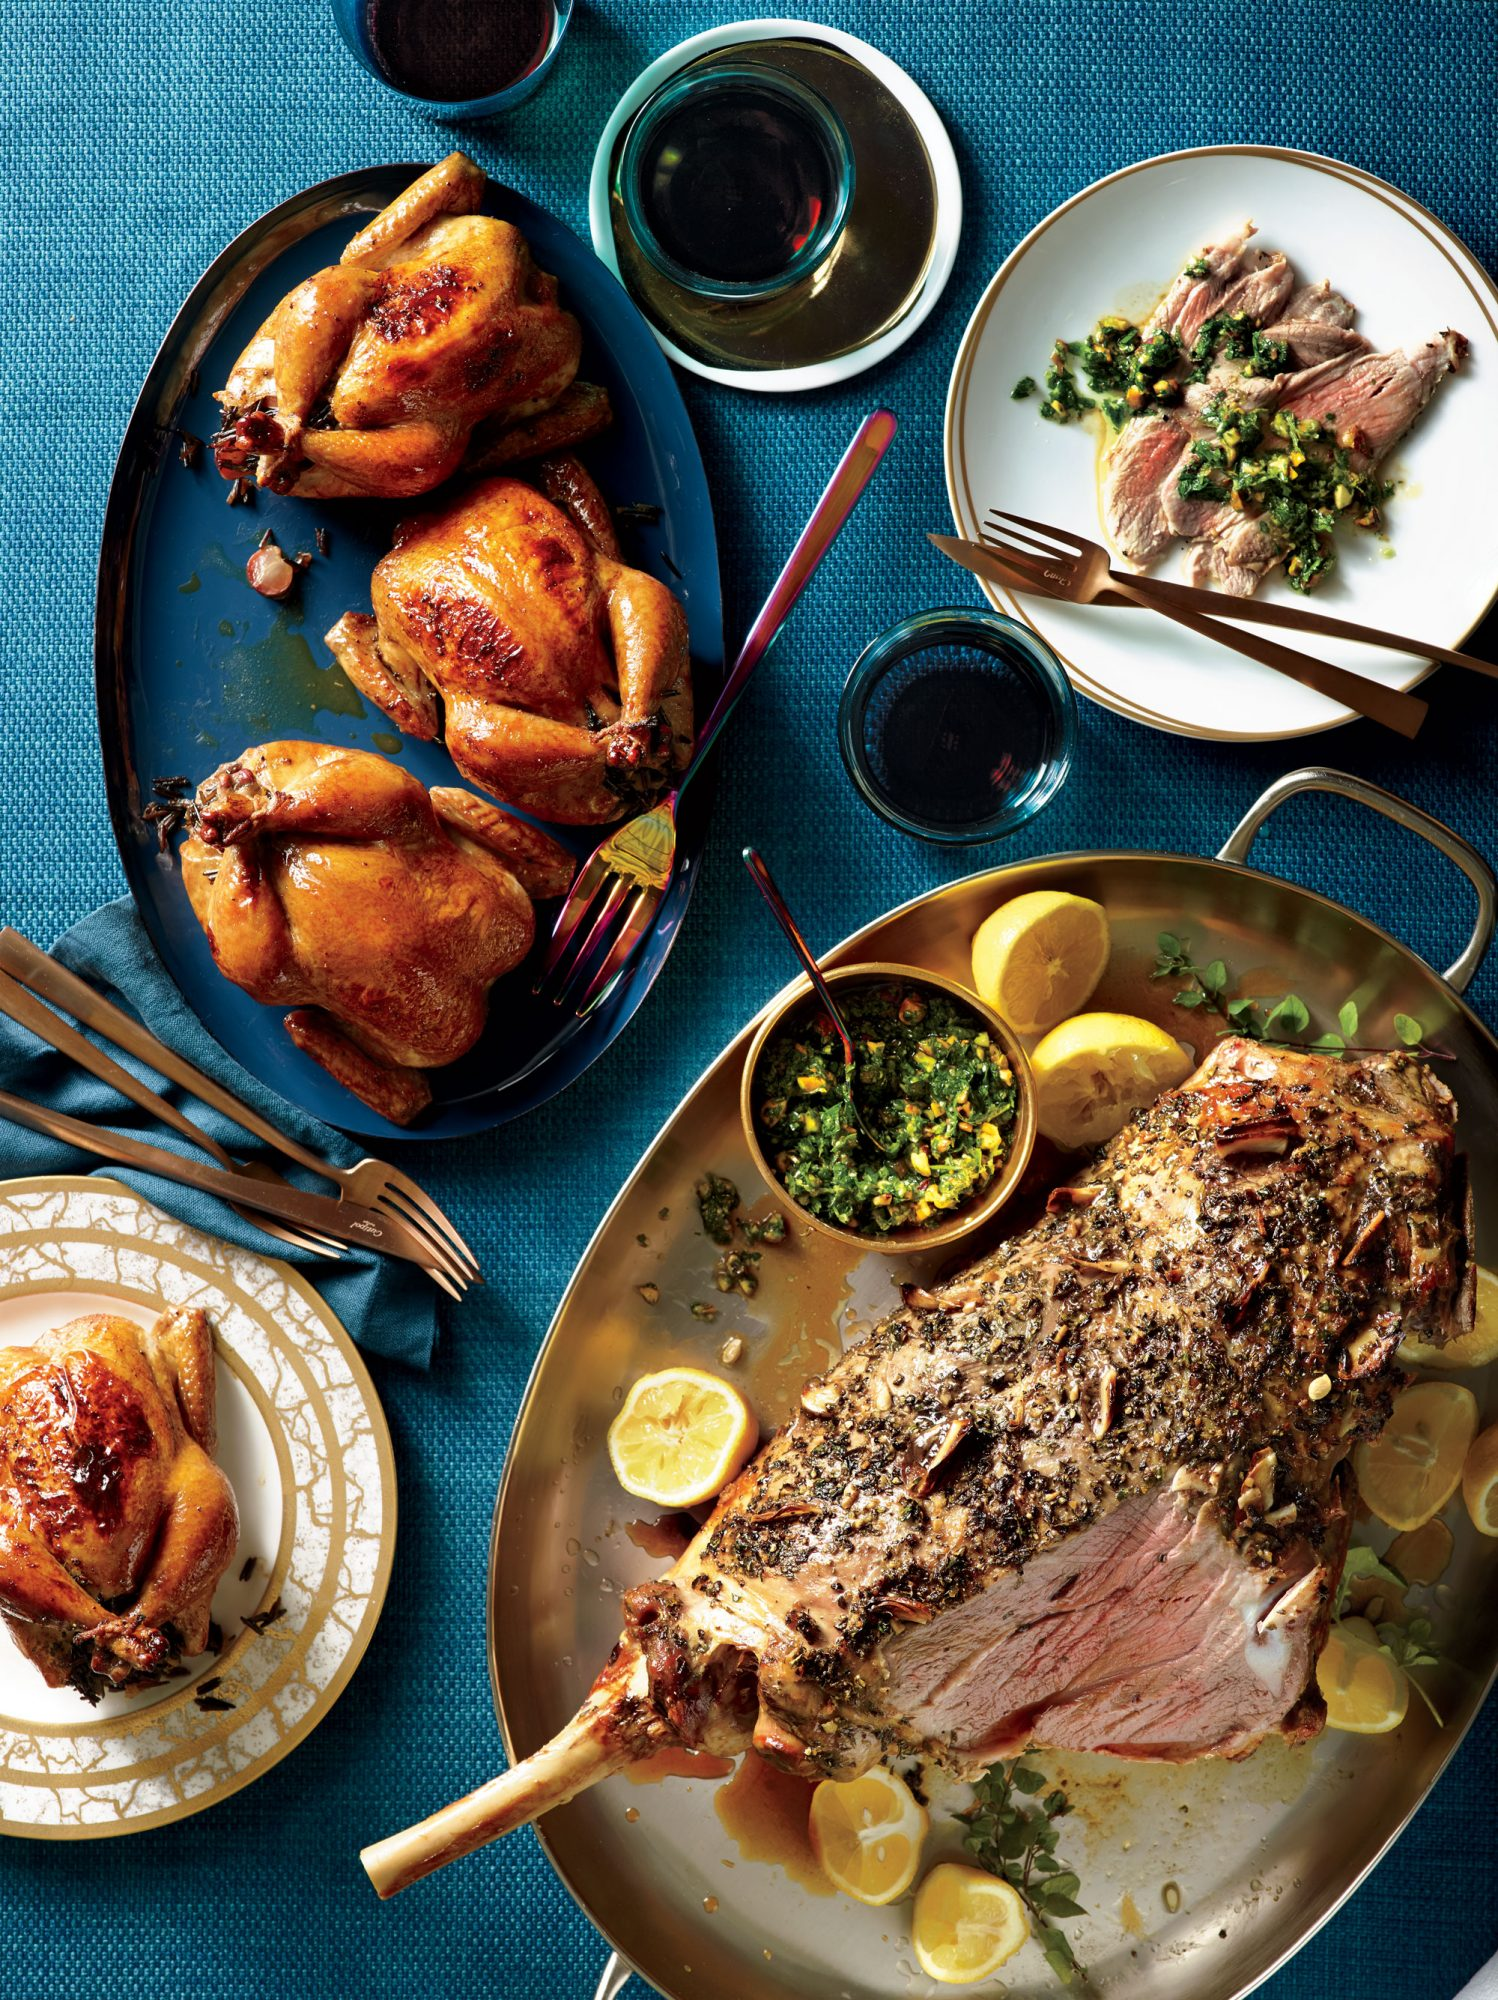 Garlicky Roasted Lamb with Parsley-Pistachio Gremolata